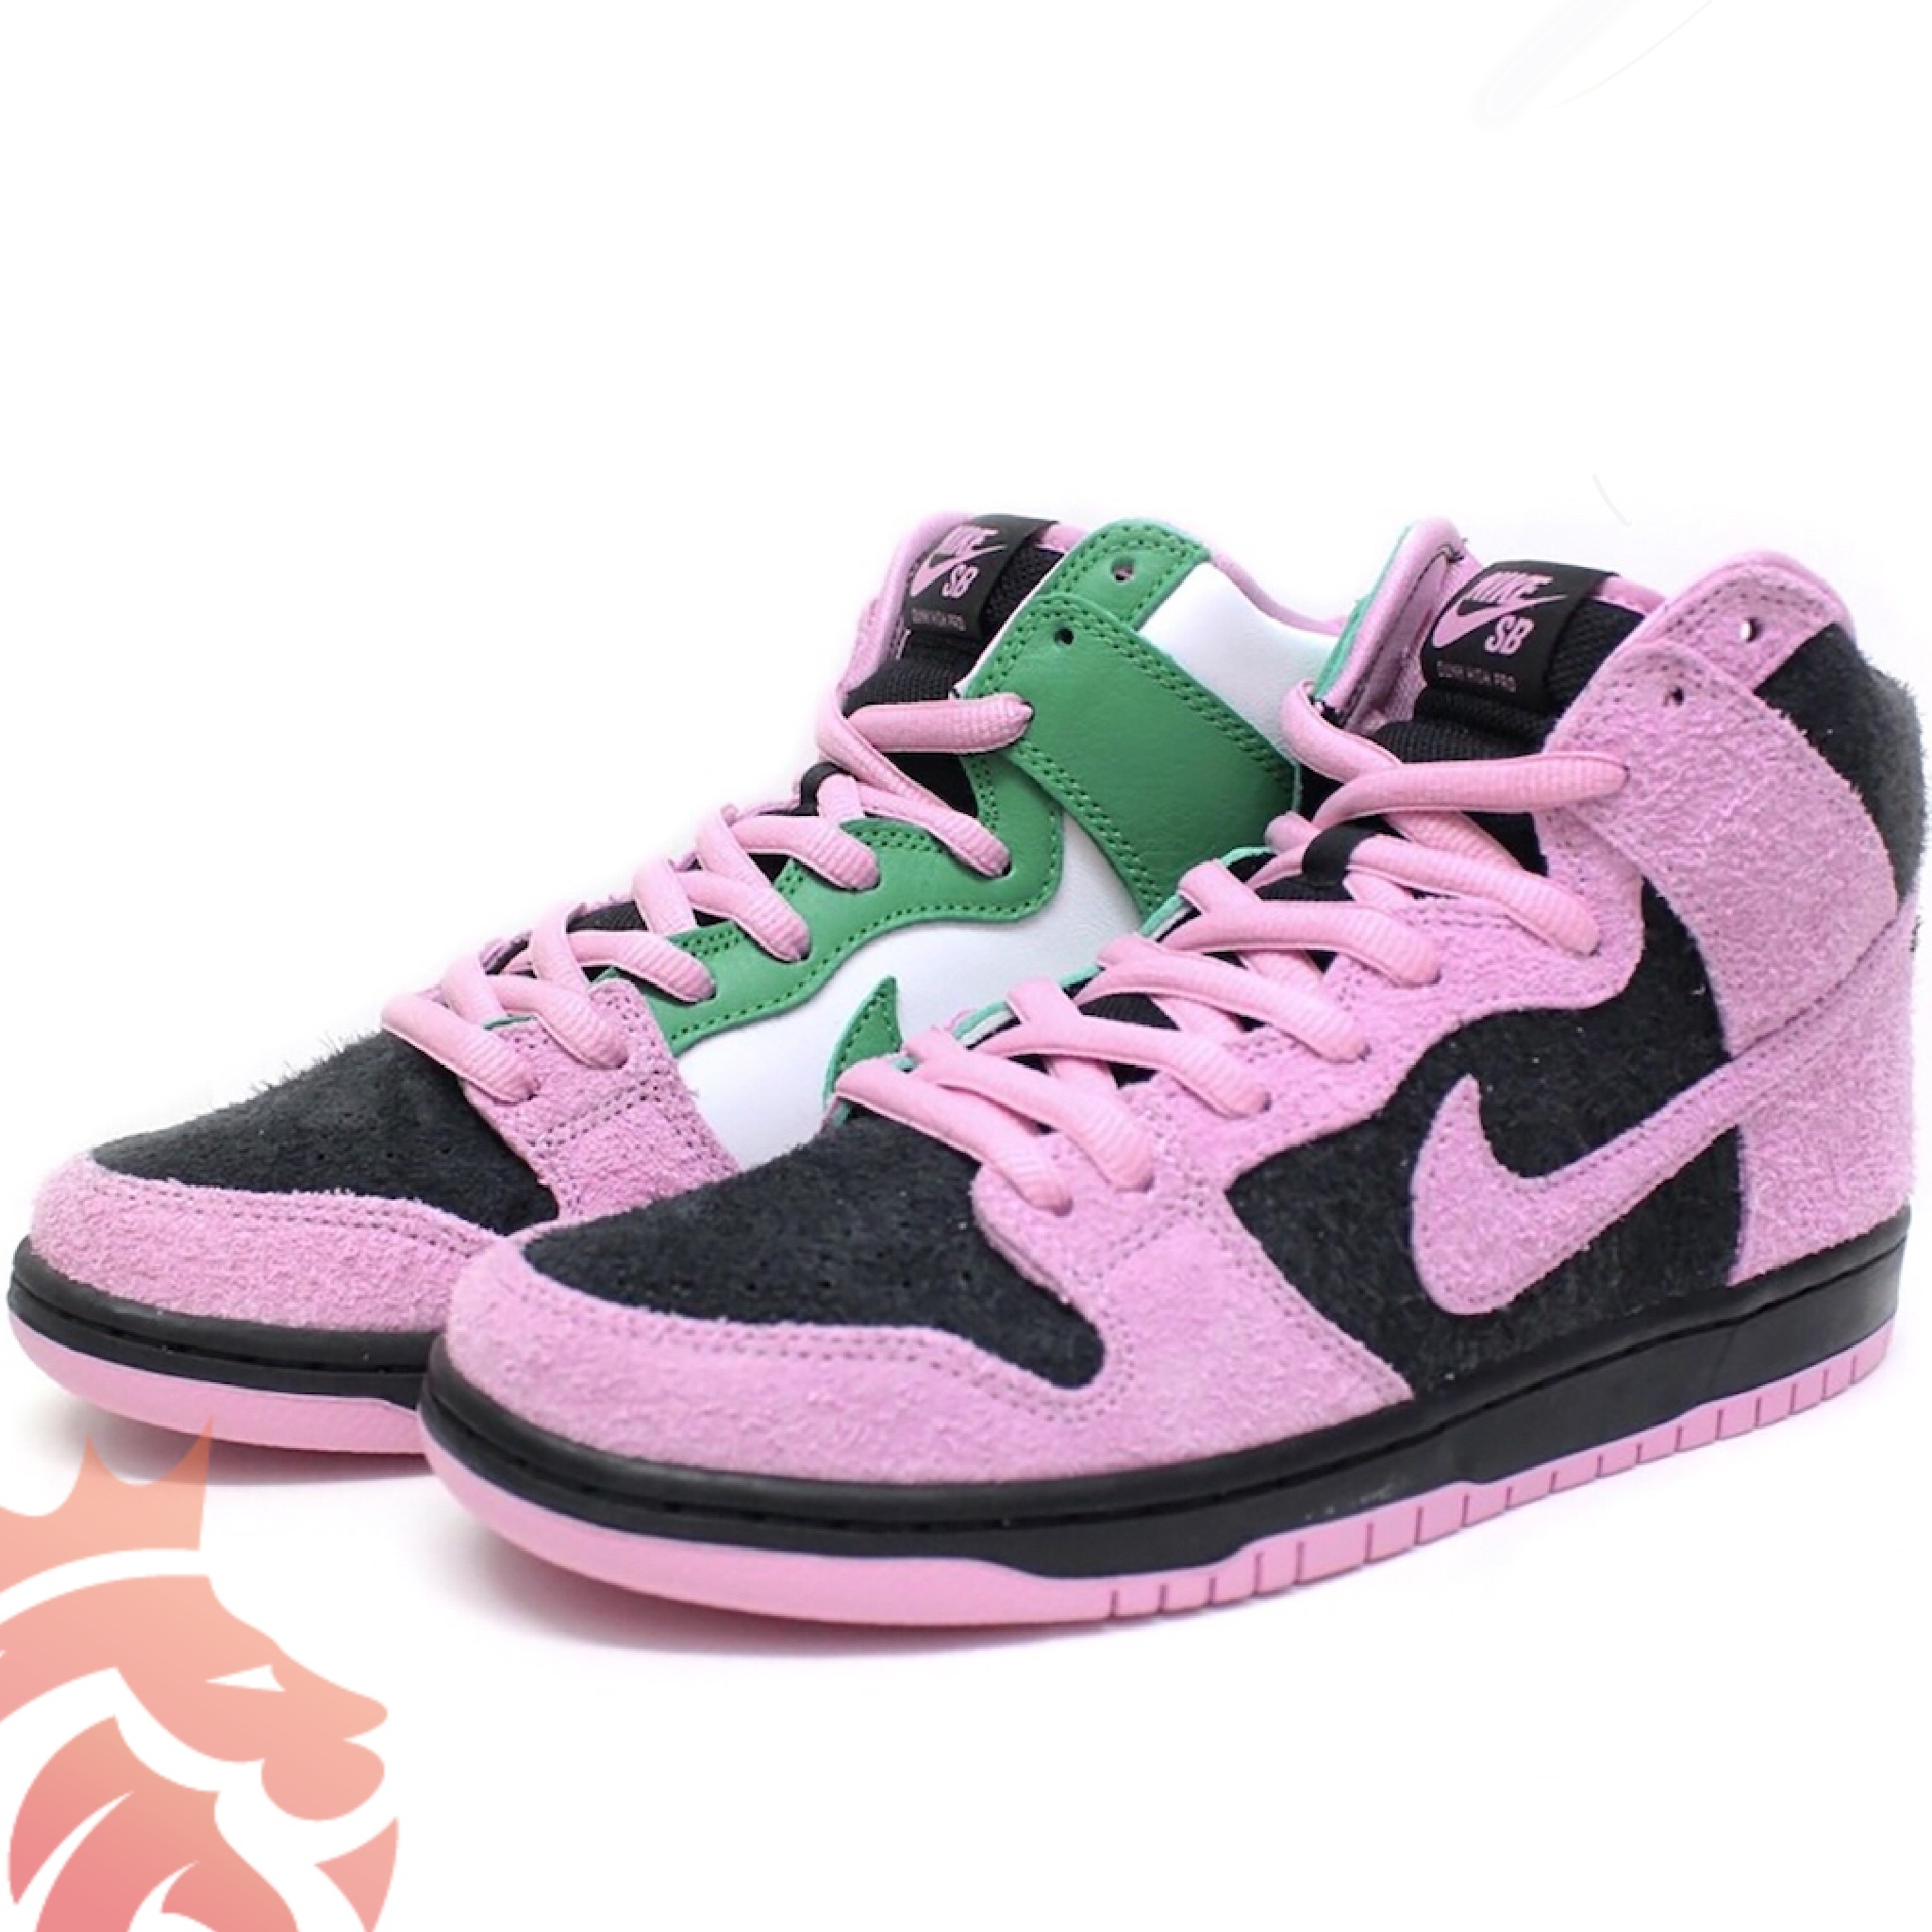 "Nike SB Dunk High ""Invert Celtics"" Black/Pink Rise-Lucky Green"